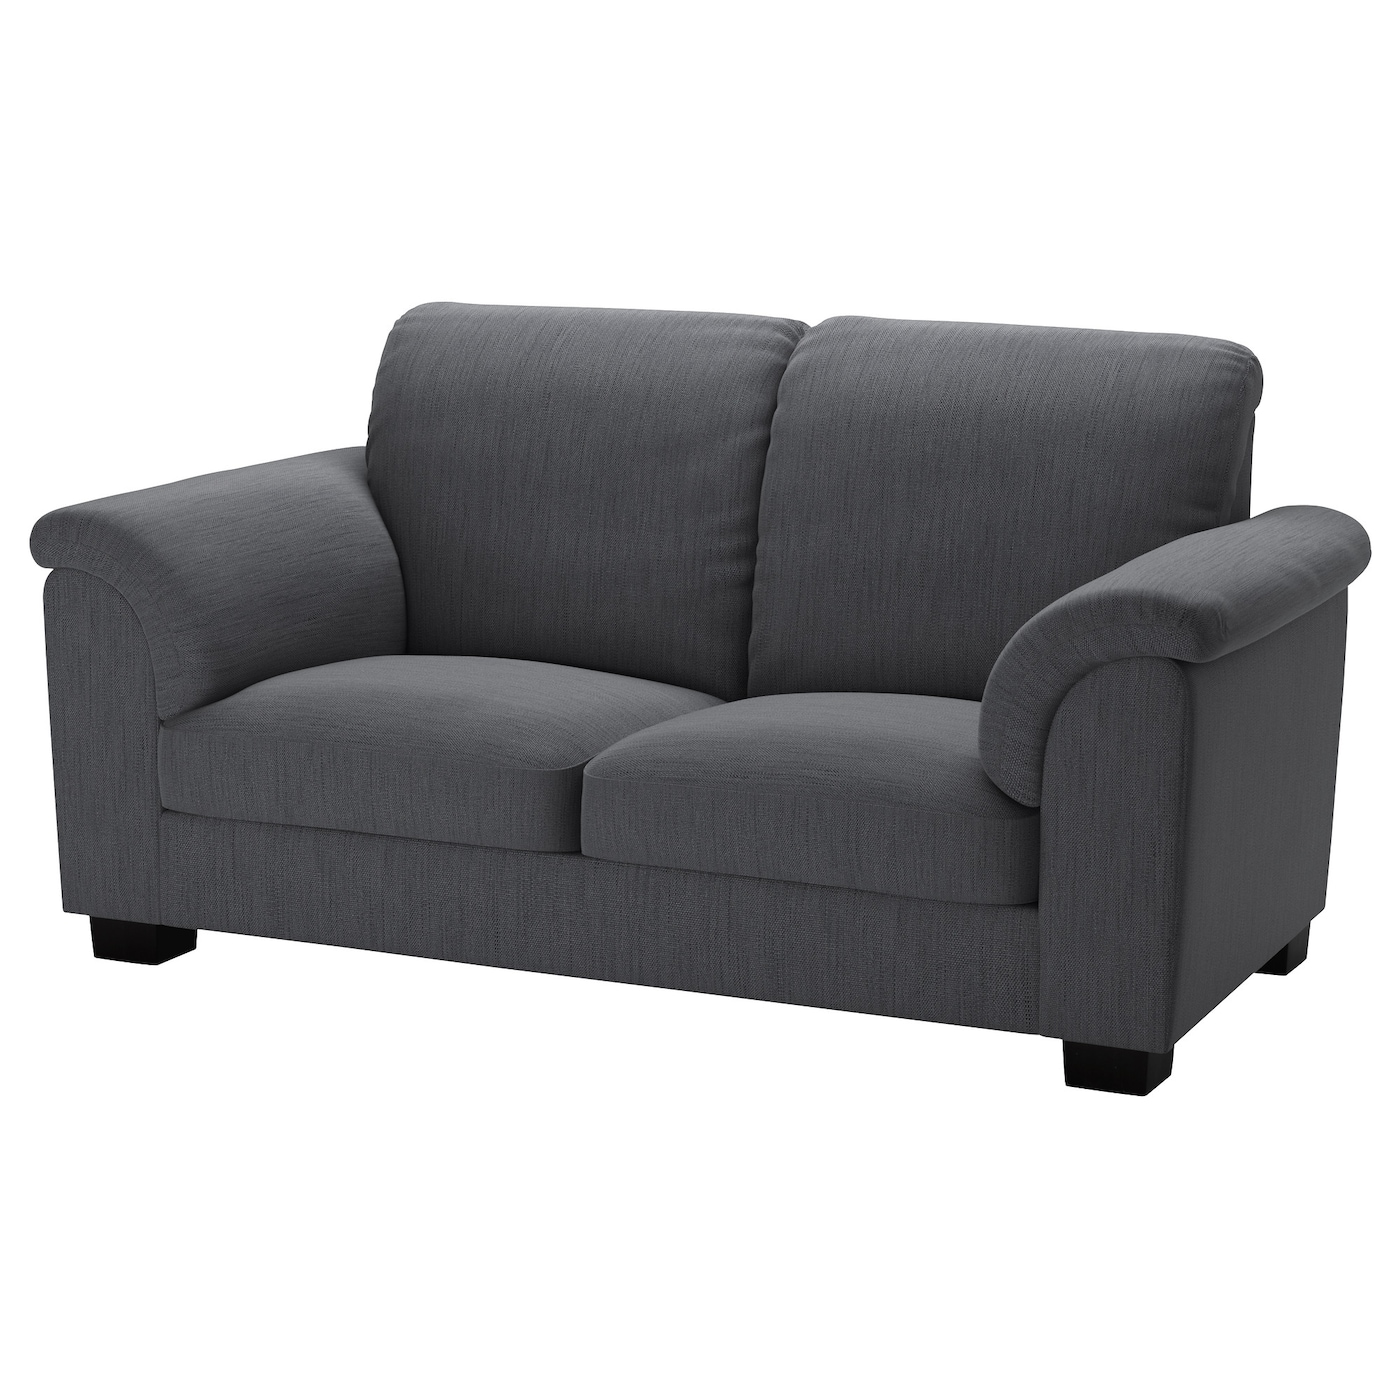 2er sofa ikea  TIDAFORS Two-seat sofa Hensta grey - IKEA